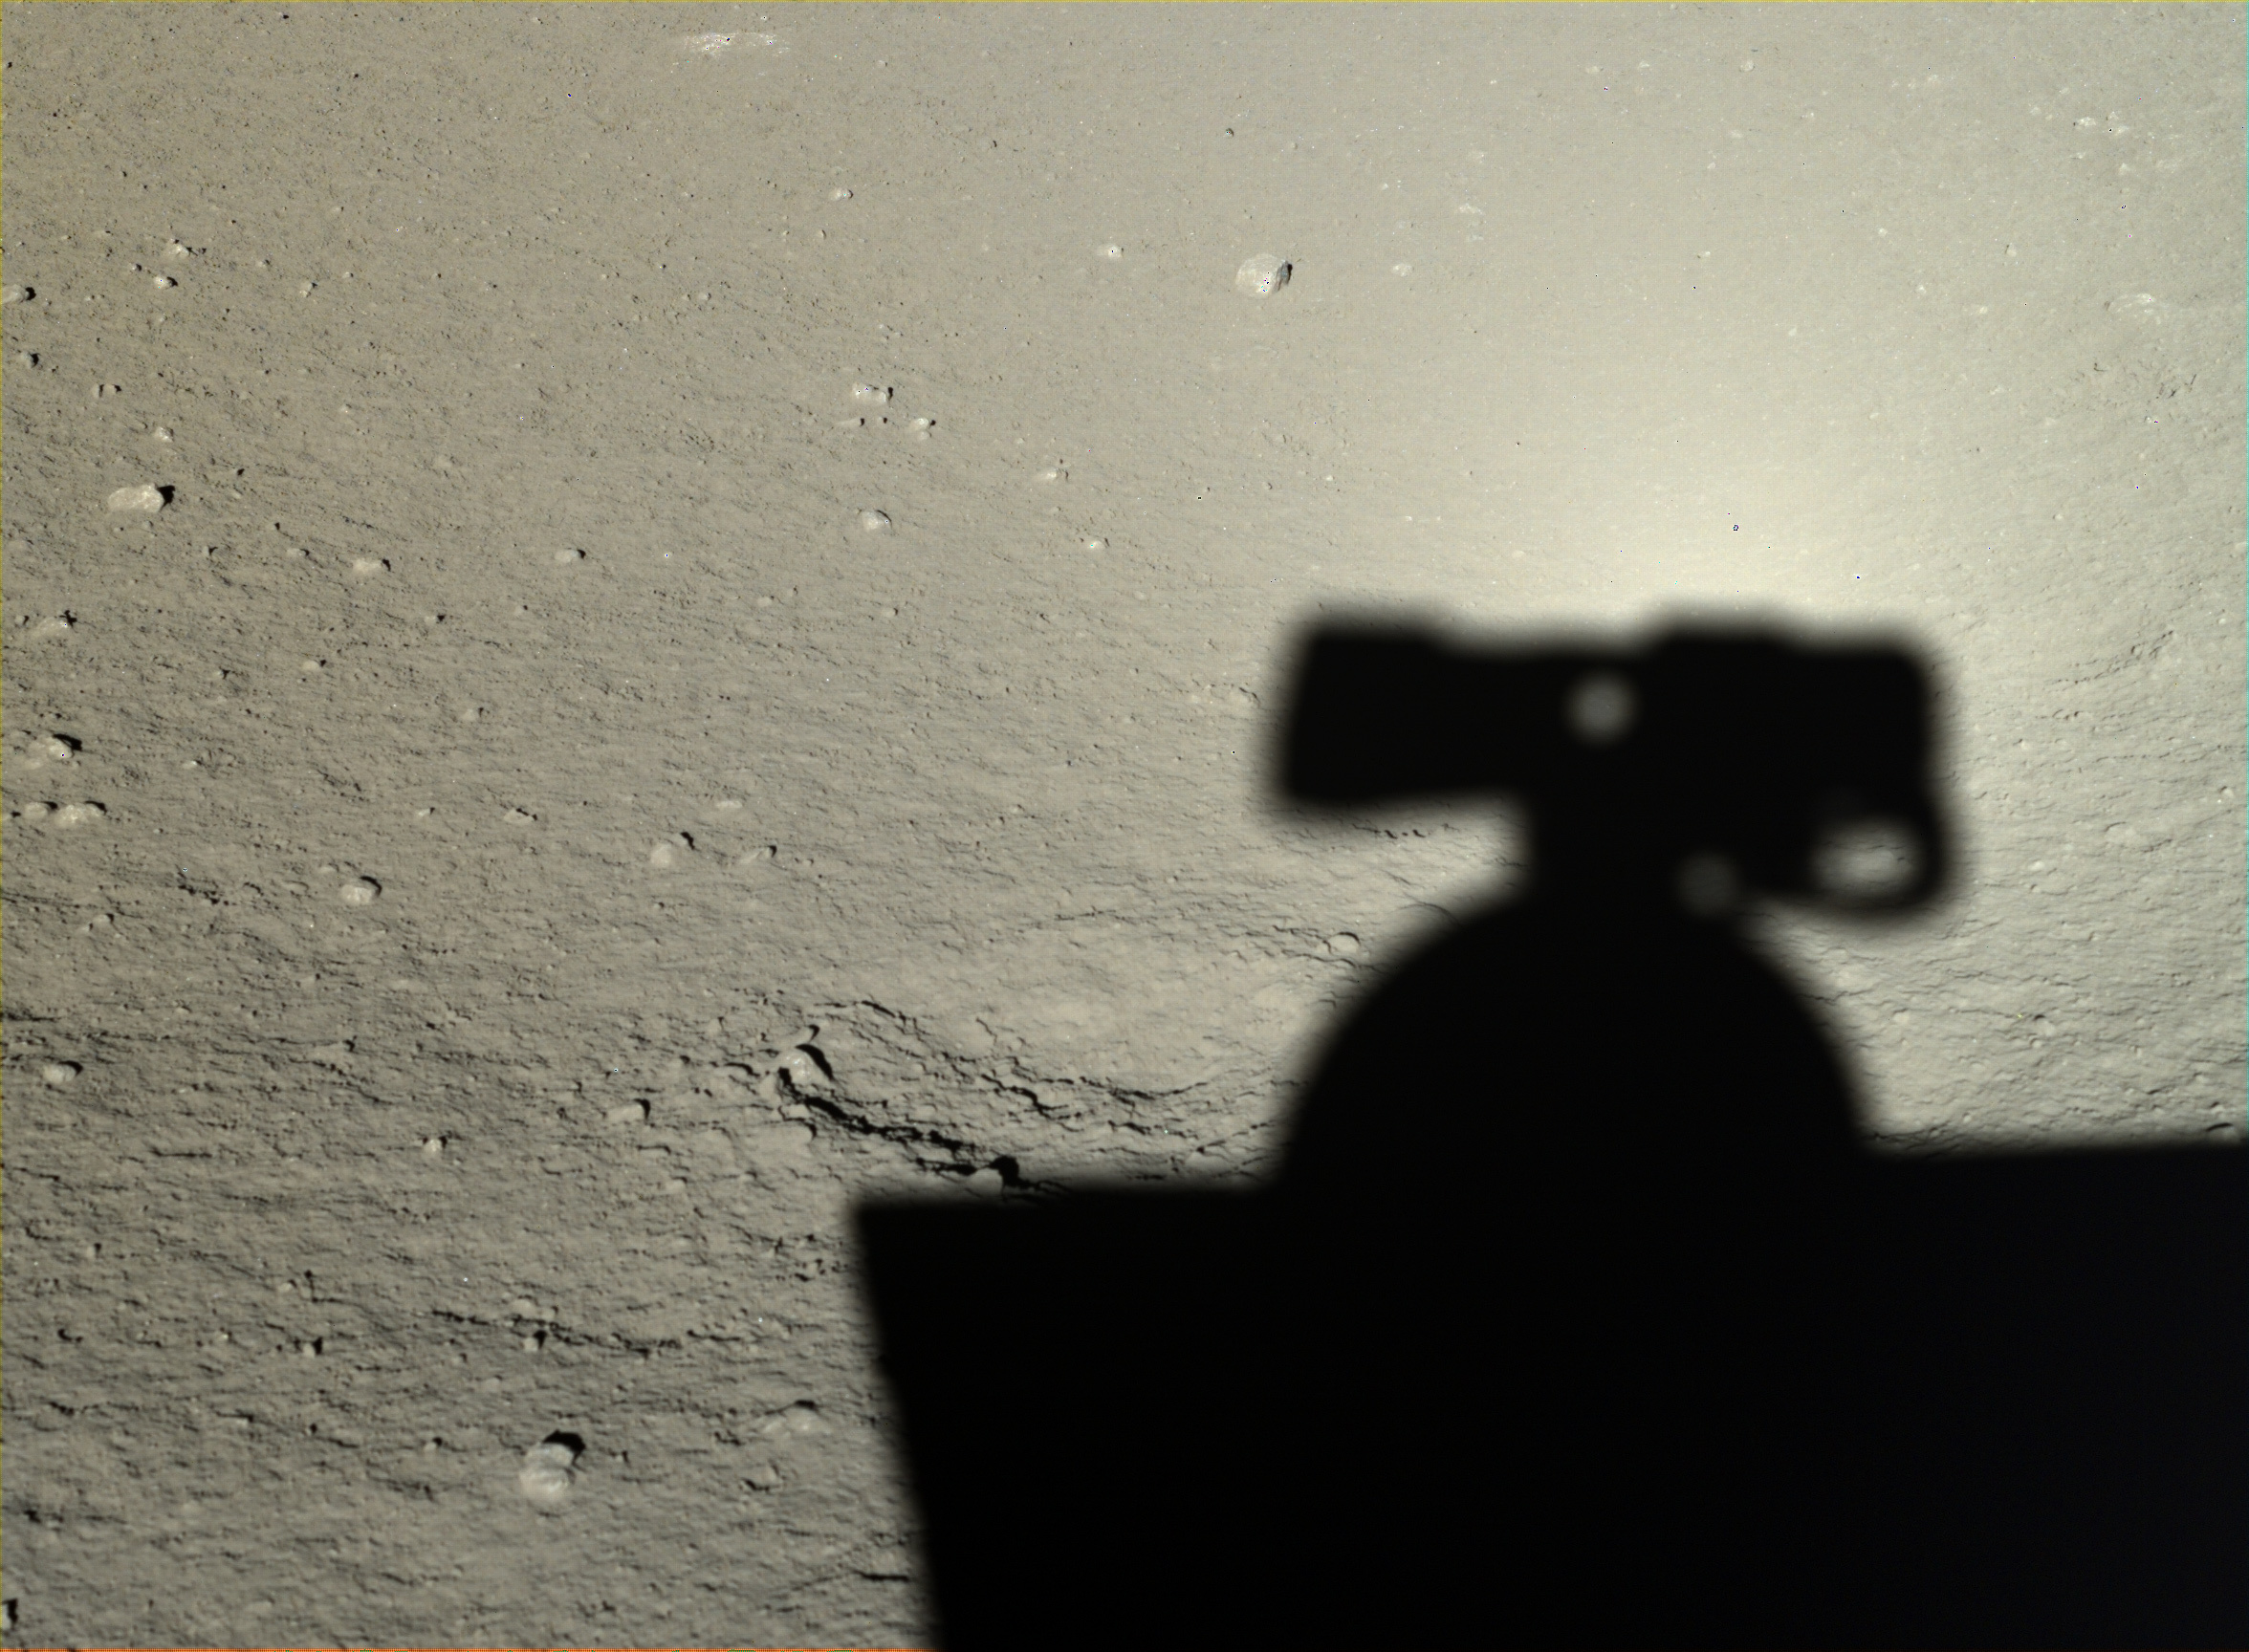 Yutu took this photo of its own shadow on Jan. 12, 2014.